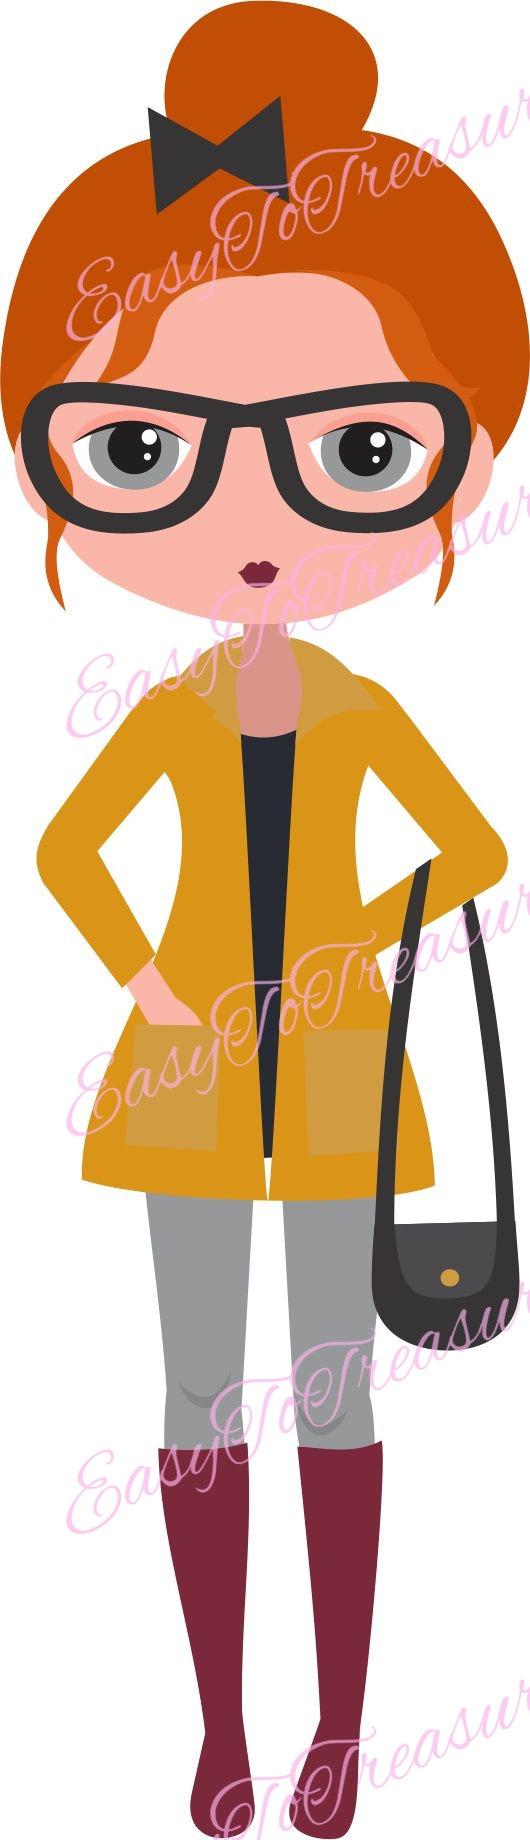 Red head woman clipart image freeuse stock Pin by Etsy on Products   Redhead girl, Digital art girl ... image freeuse stock